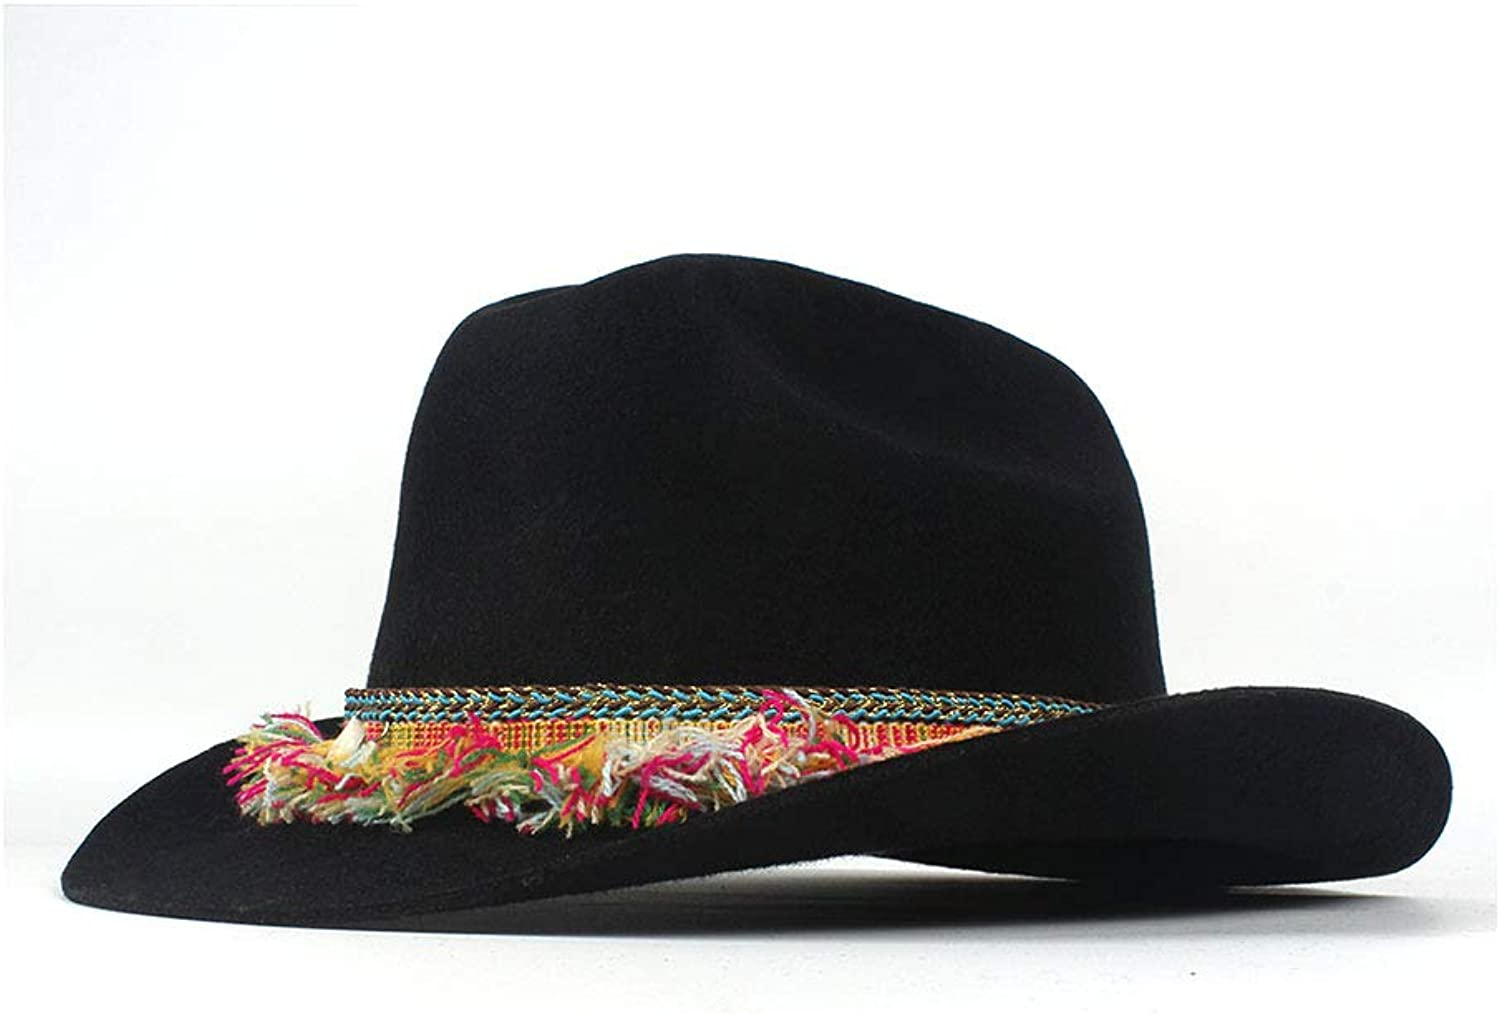 Cool Cowboy hat Spring Autumn Winter Ethnic Style Hat 100% Wool Wide Brim Cowboy Western Cowgirl Bowler Hat Fedora Cap colorful Fringe Belt Jazz Hat Elegant Cowgirl Hat